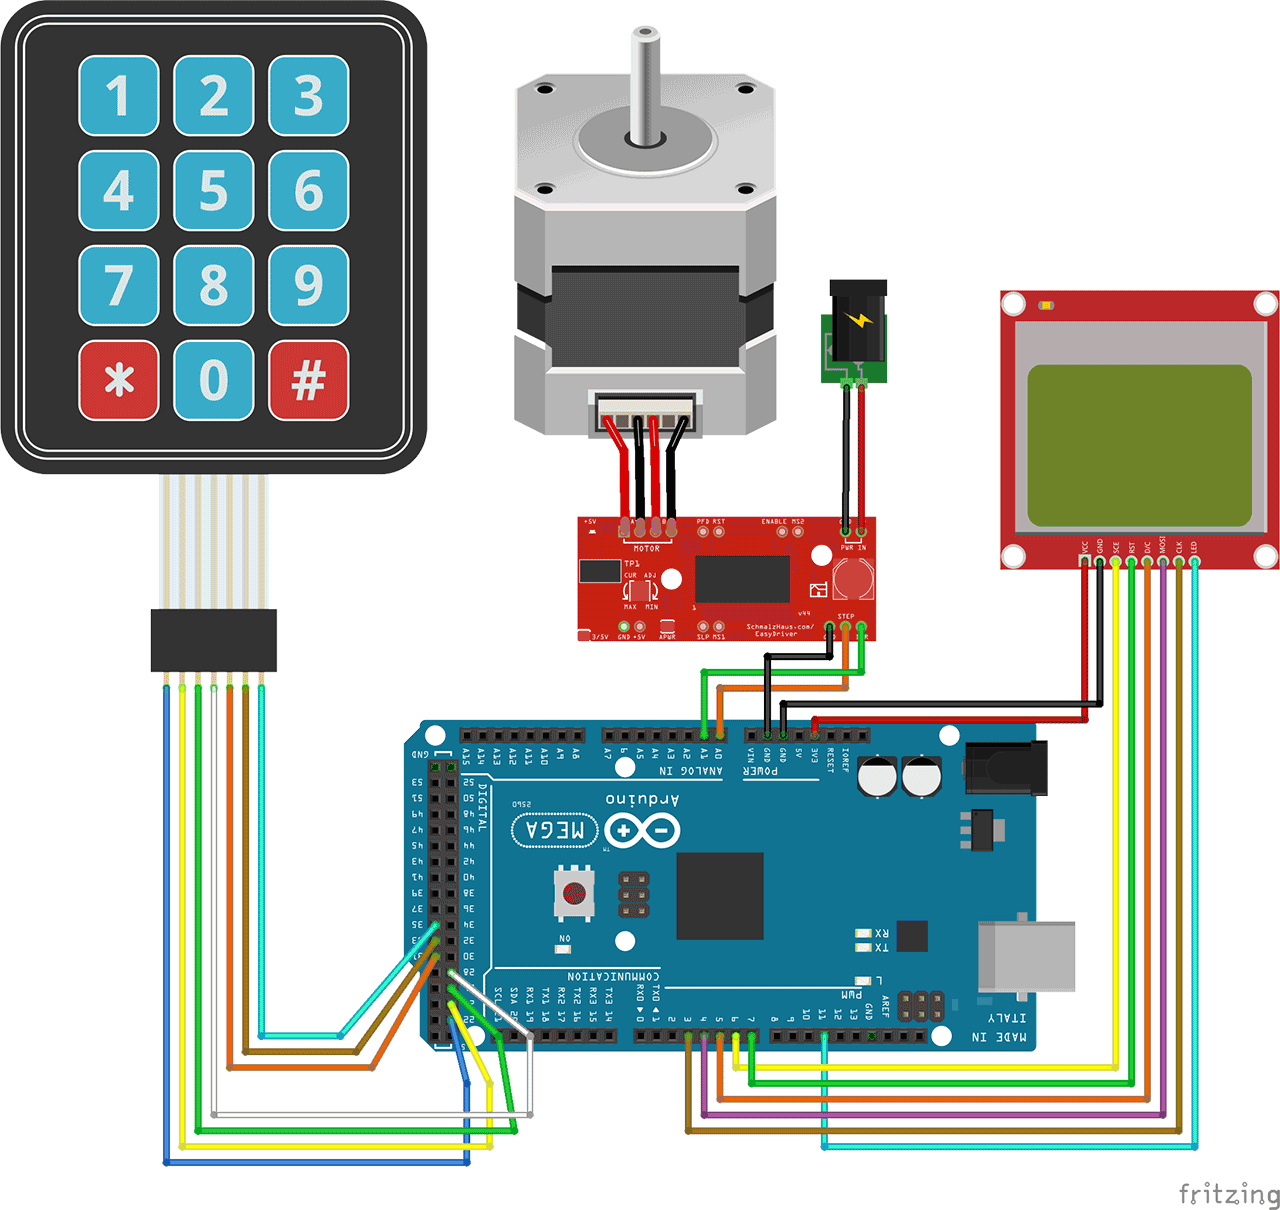 medium resolution of let s control the movement of a stepper motor by entering a value in millimeters using an arduino a keypad and display the position on a nokia lcd